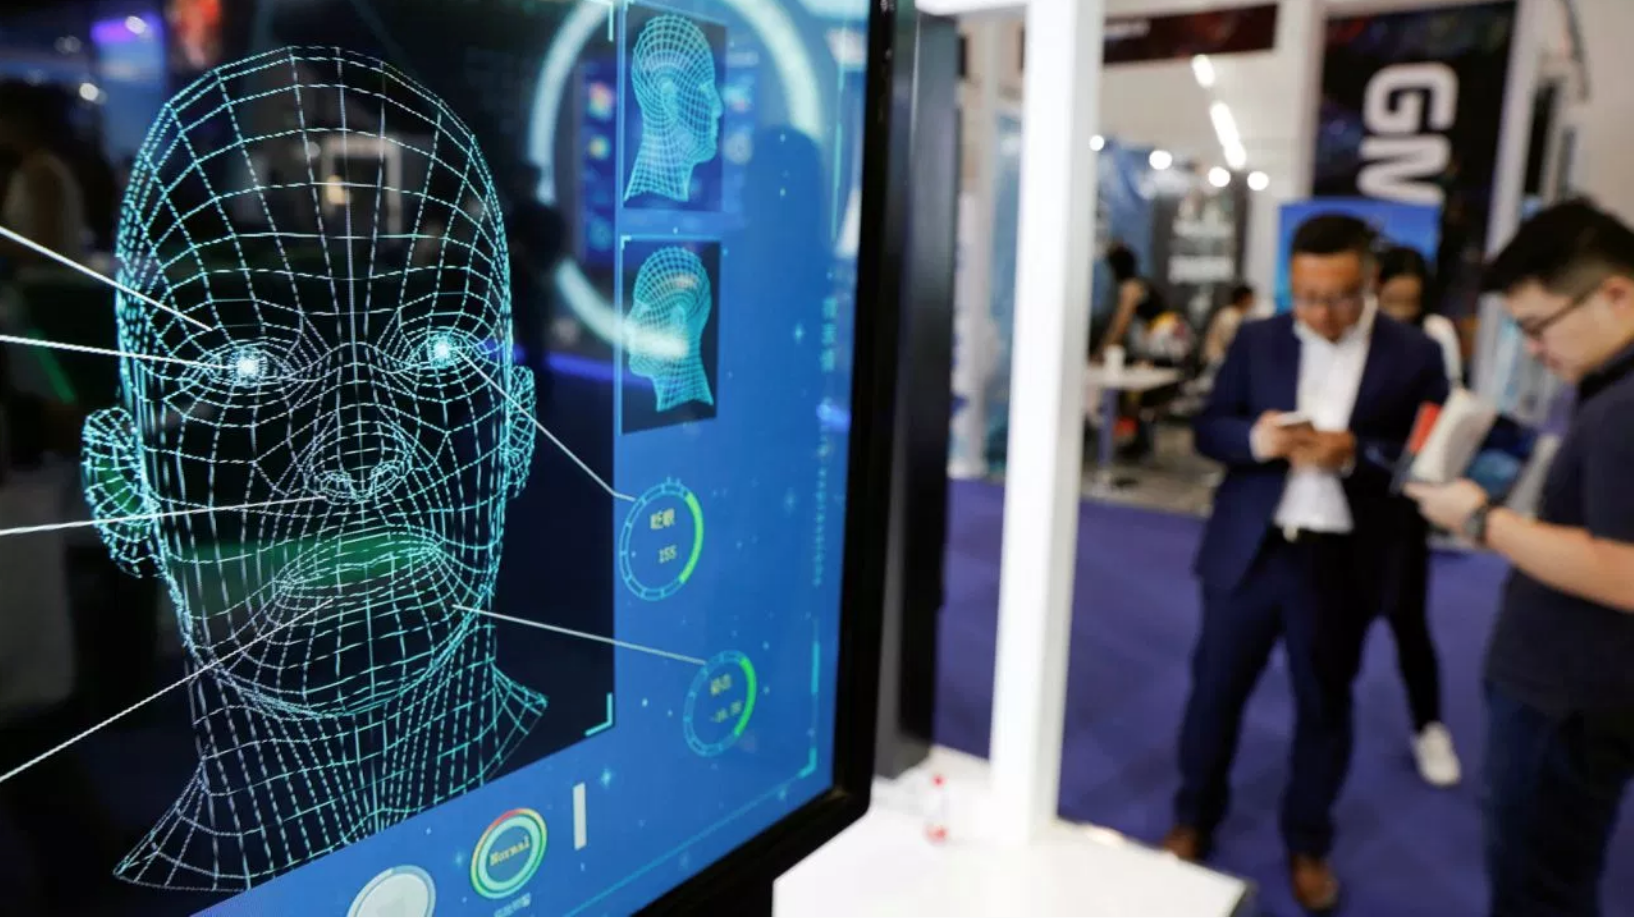 China exports facial recognition software to Africa as it expands its vast database